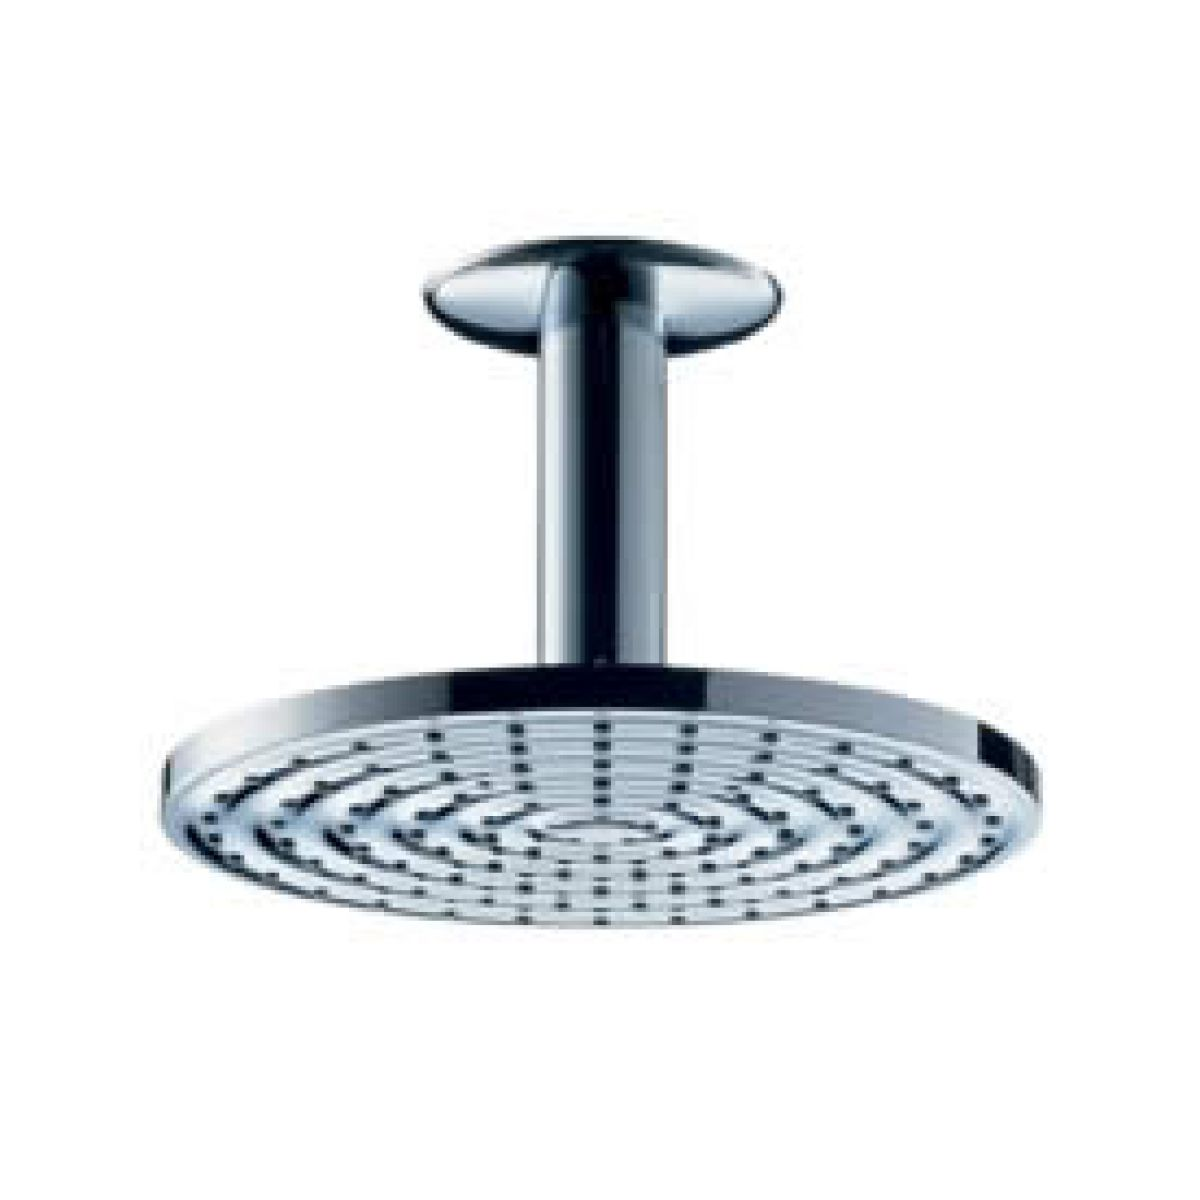 Shower Head Hansgrohe Shower Head Holder Grohe Shower Head Reviews ...